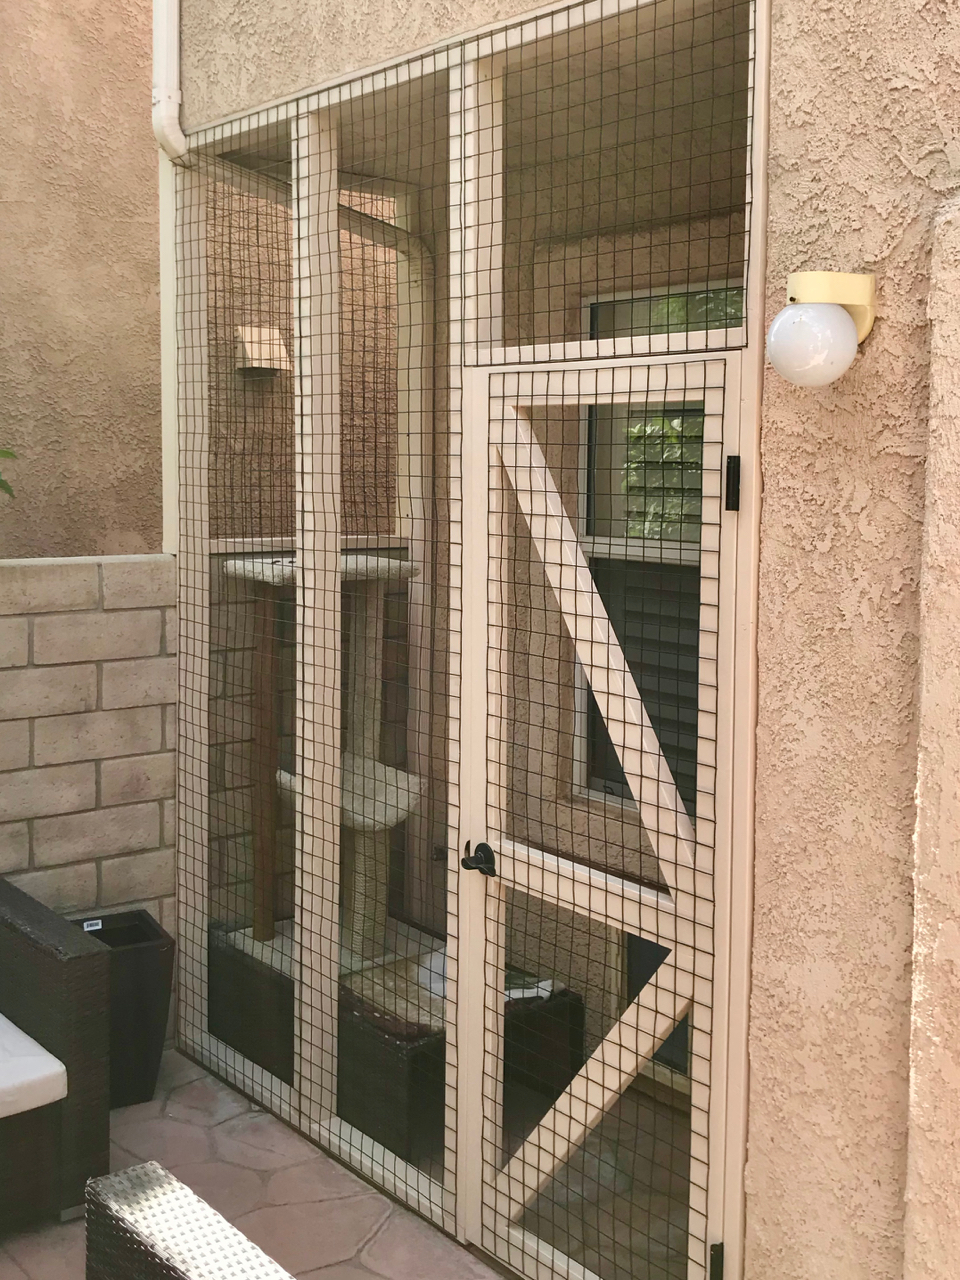 Simi Valley Catio Cat Enclosure